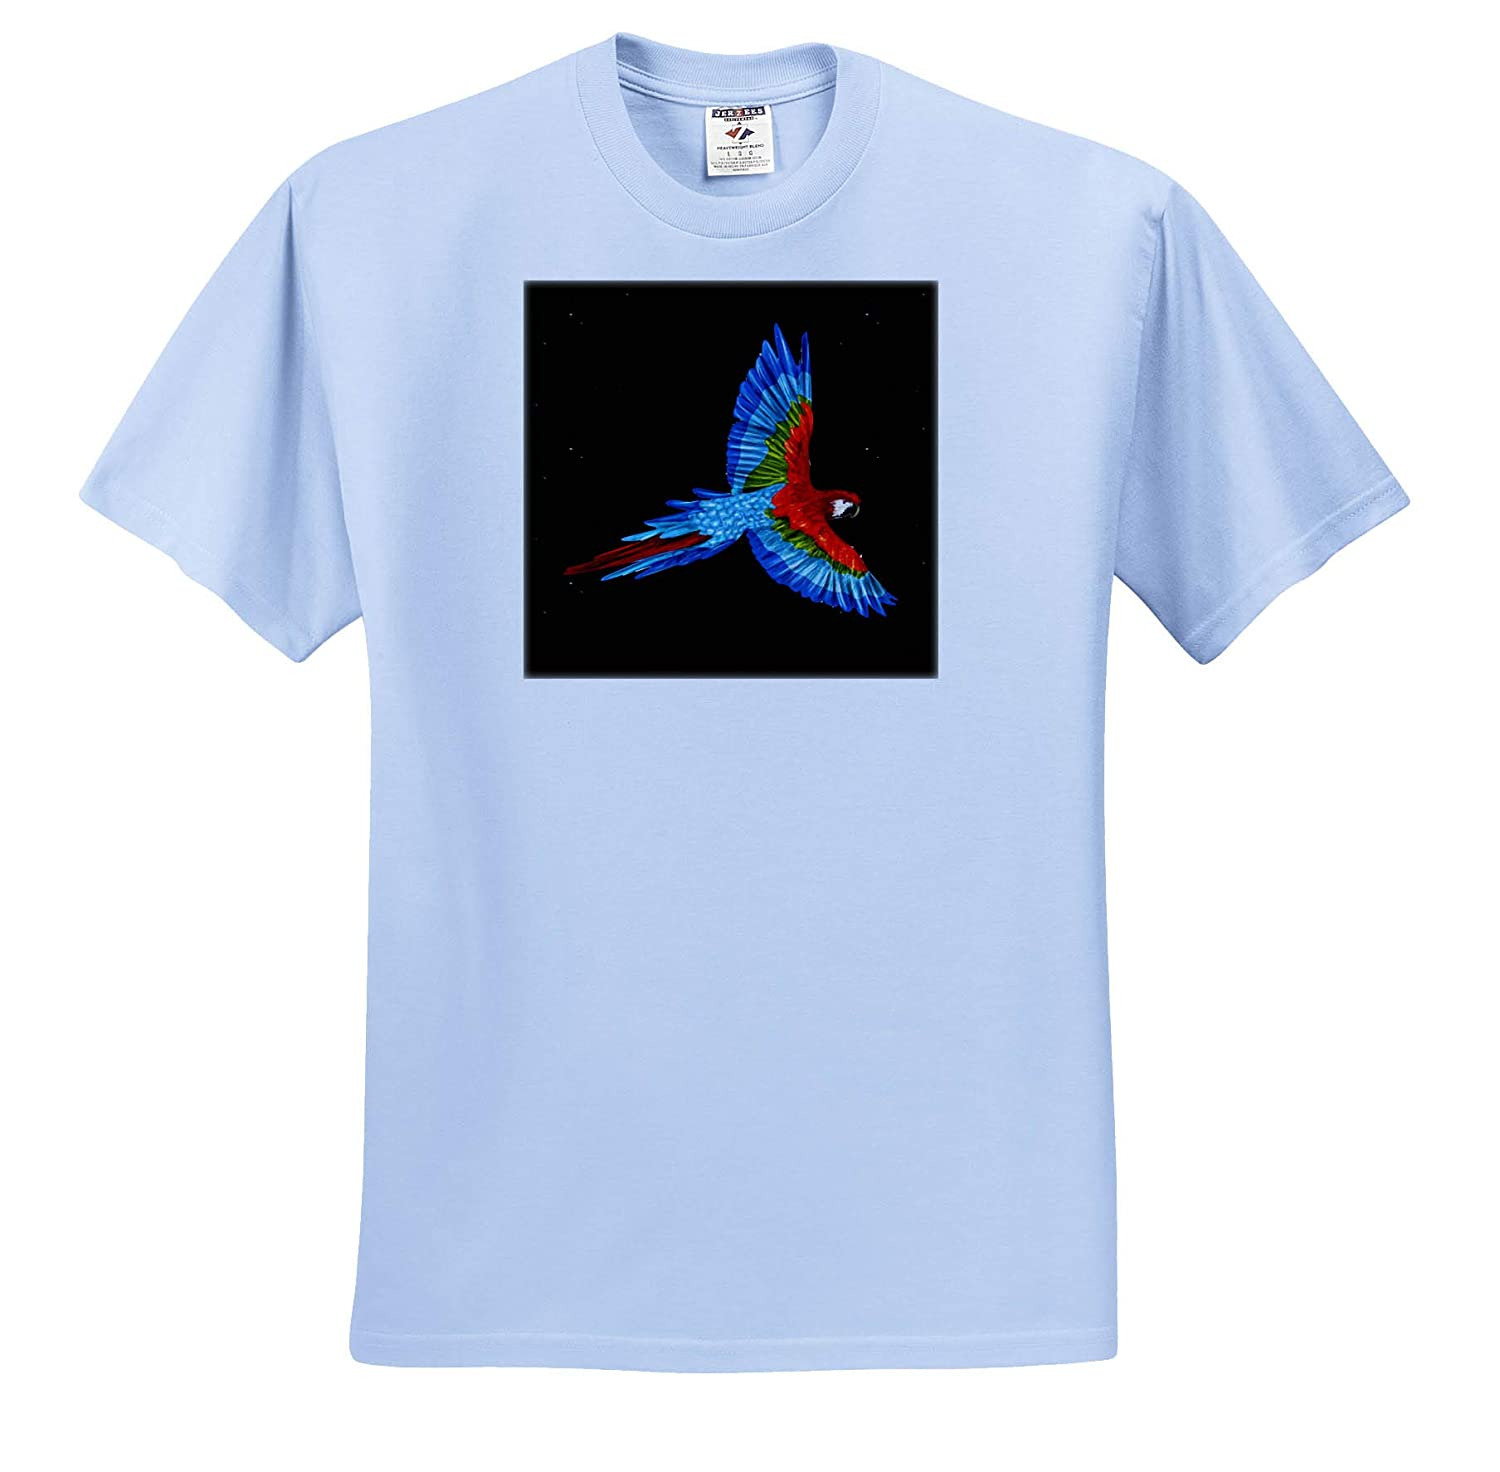 T-Shirts 3dRose Sven Herkenrath Bird Colouful Illustration Design of a Exotic Tropical Parrot Bird